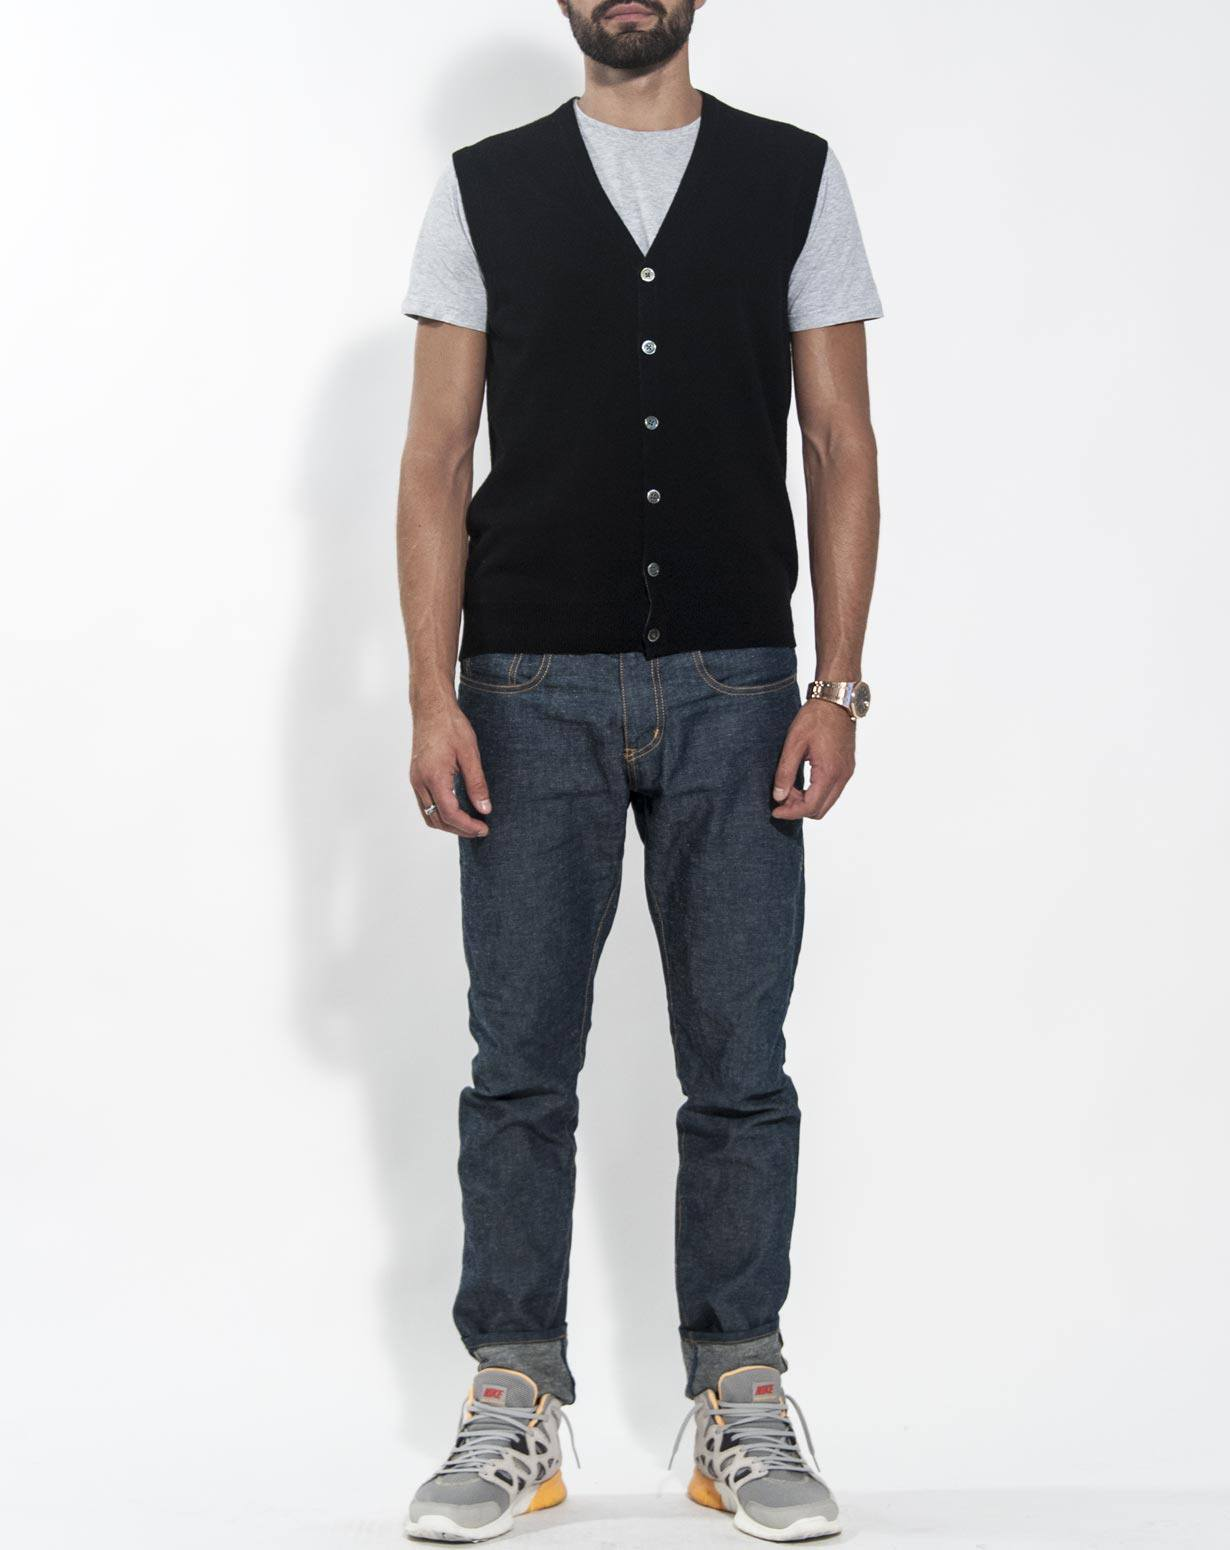 Men's Cashmere Sleeveless Cardigan | MaisonCashmere